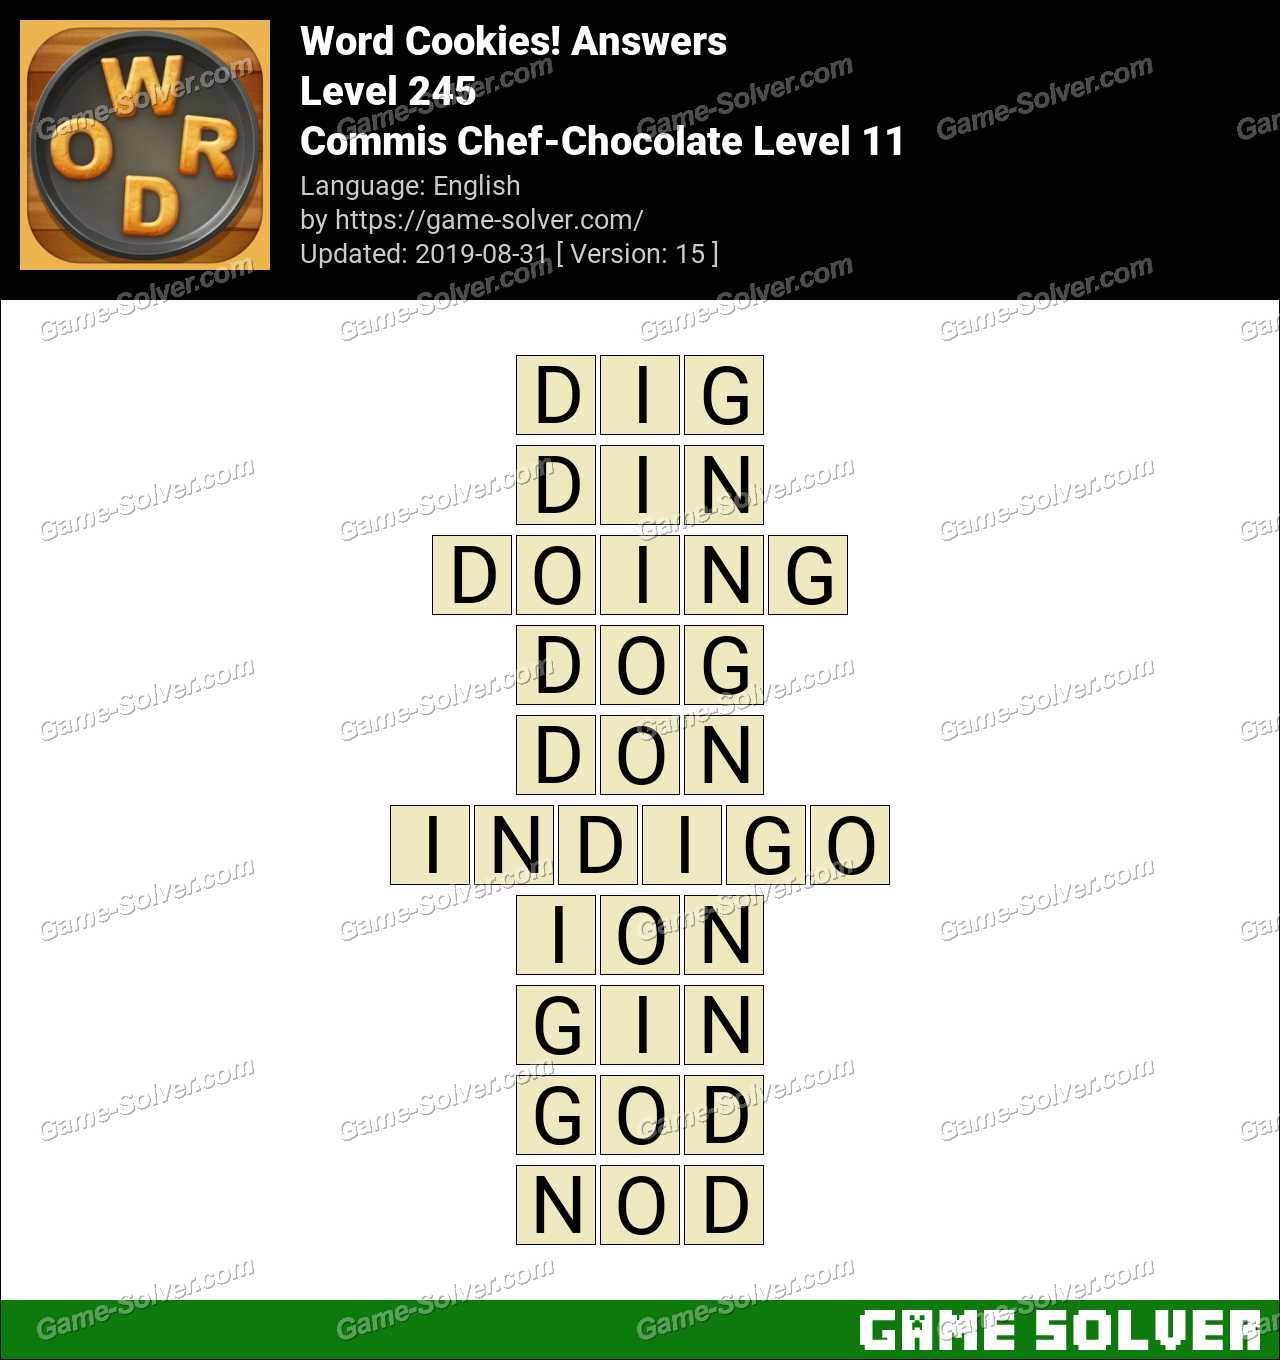 Word Cookies Commis Chef-Chocolate Level 11 Answers